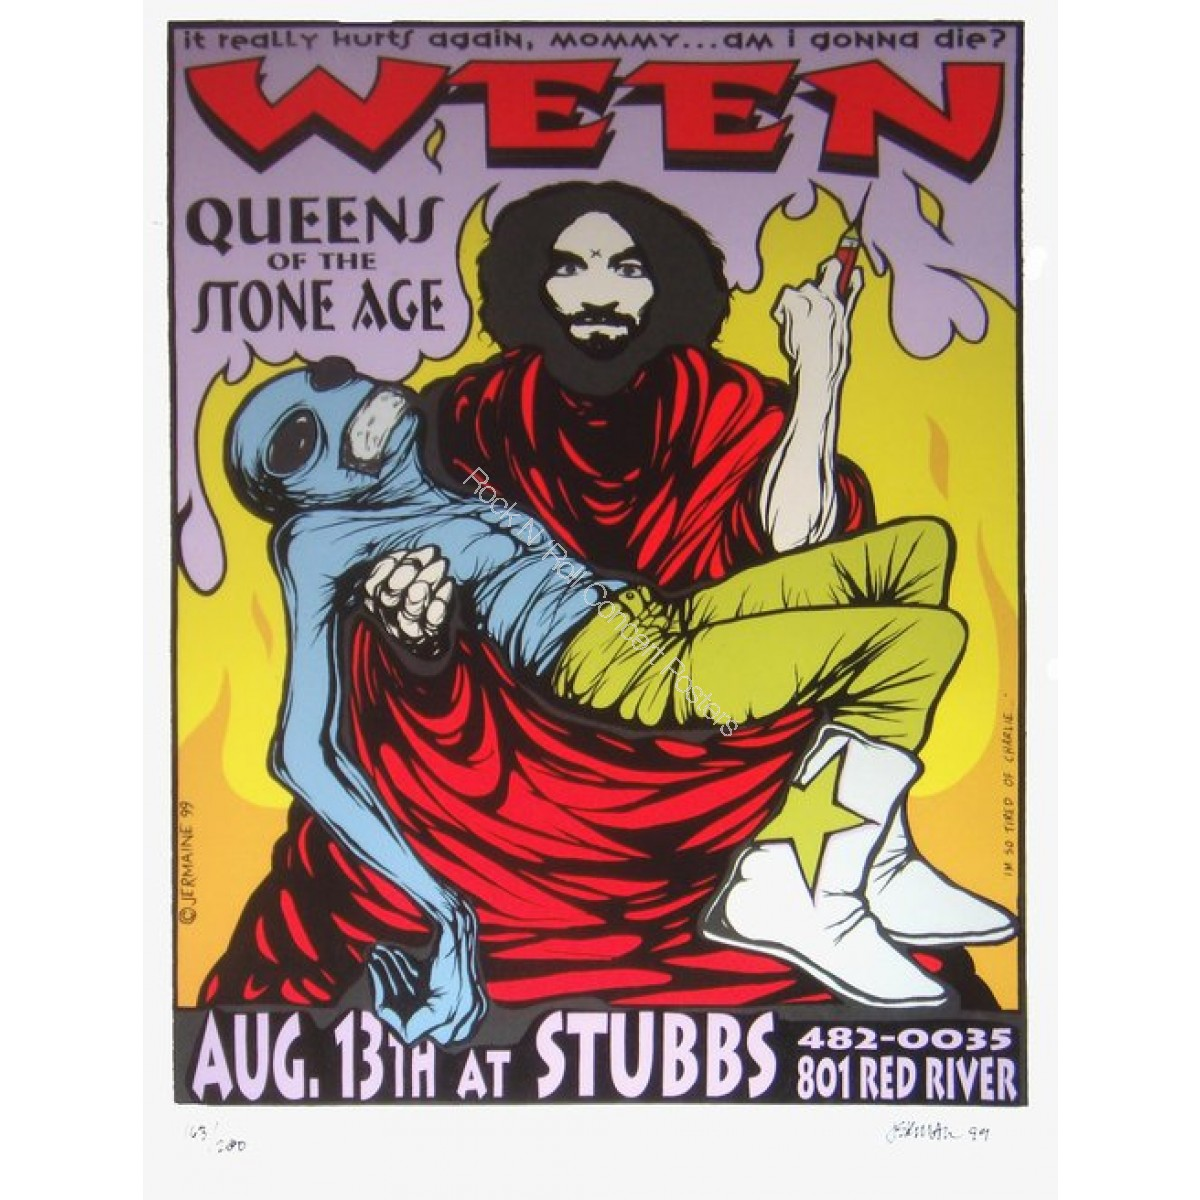 Ween & Queens Of The Stone Age @ Stubbs BBQ Austin TX 8/13/99